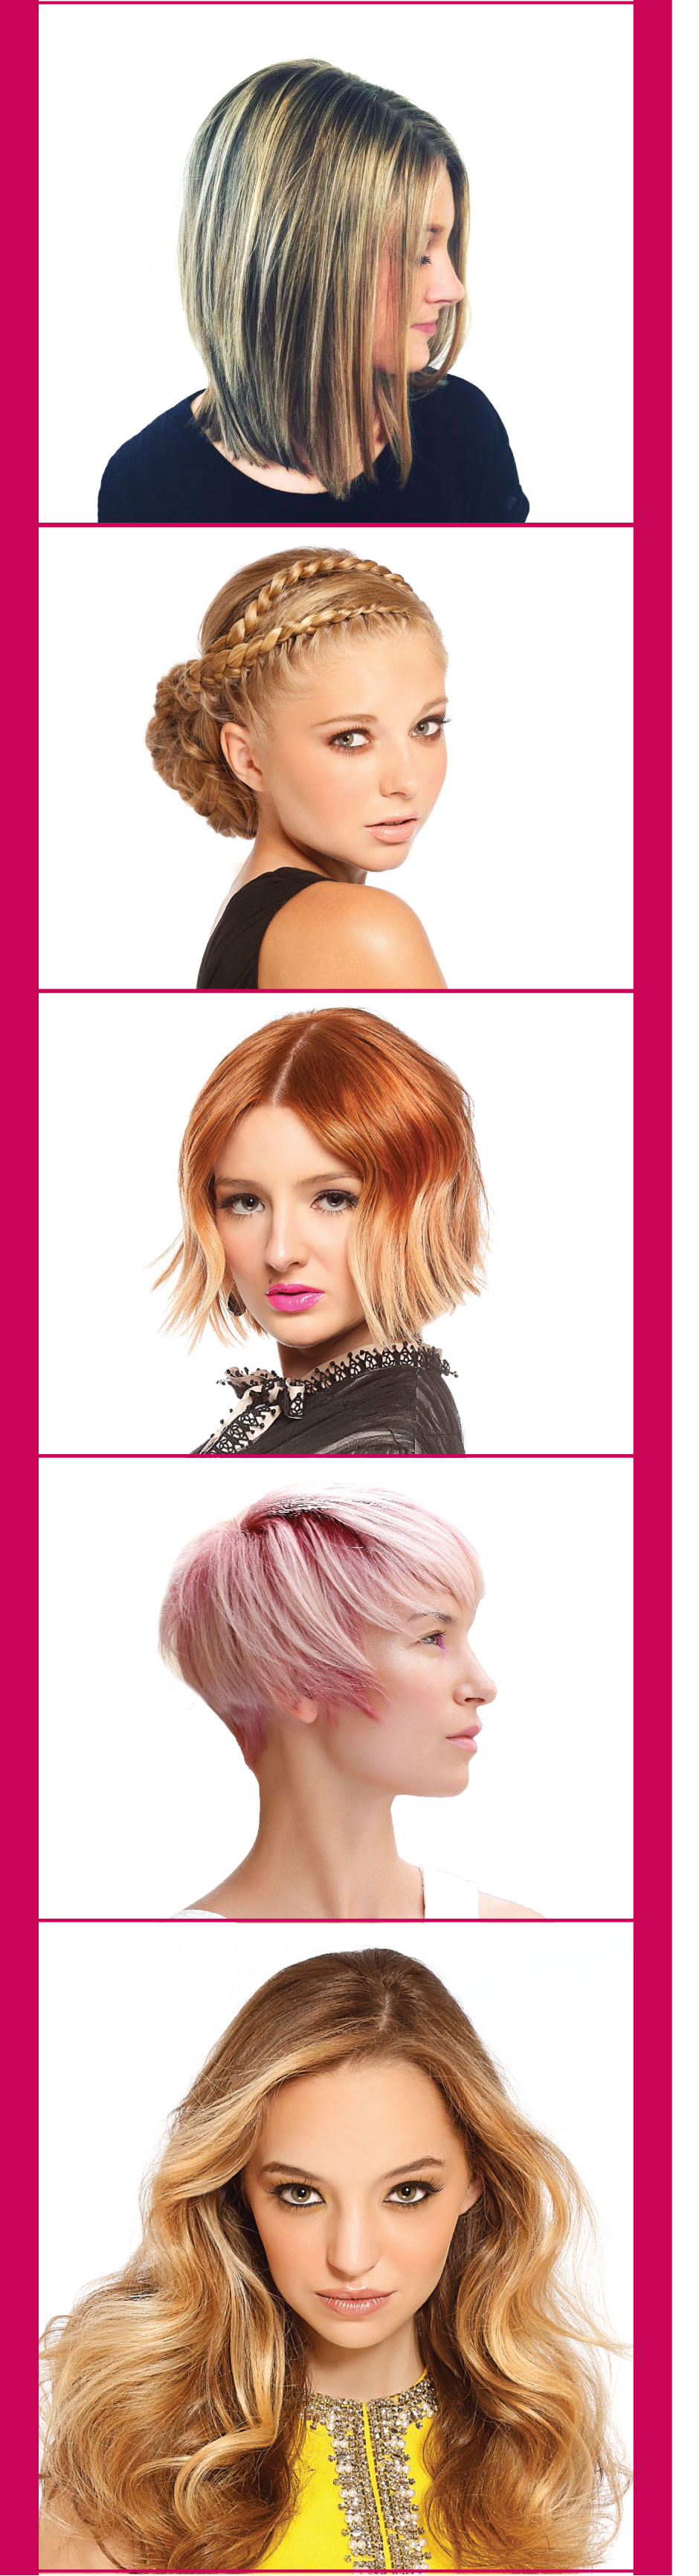 HAIR-TRENDS-PHOTOS